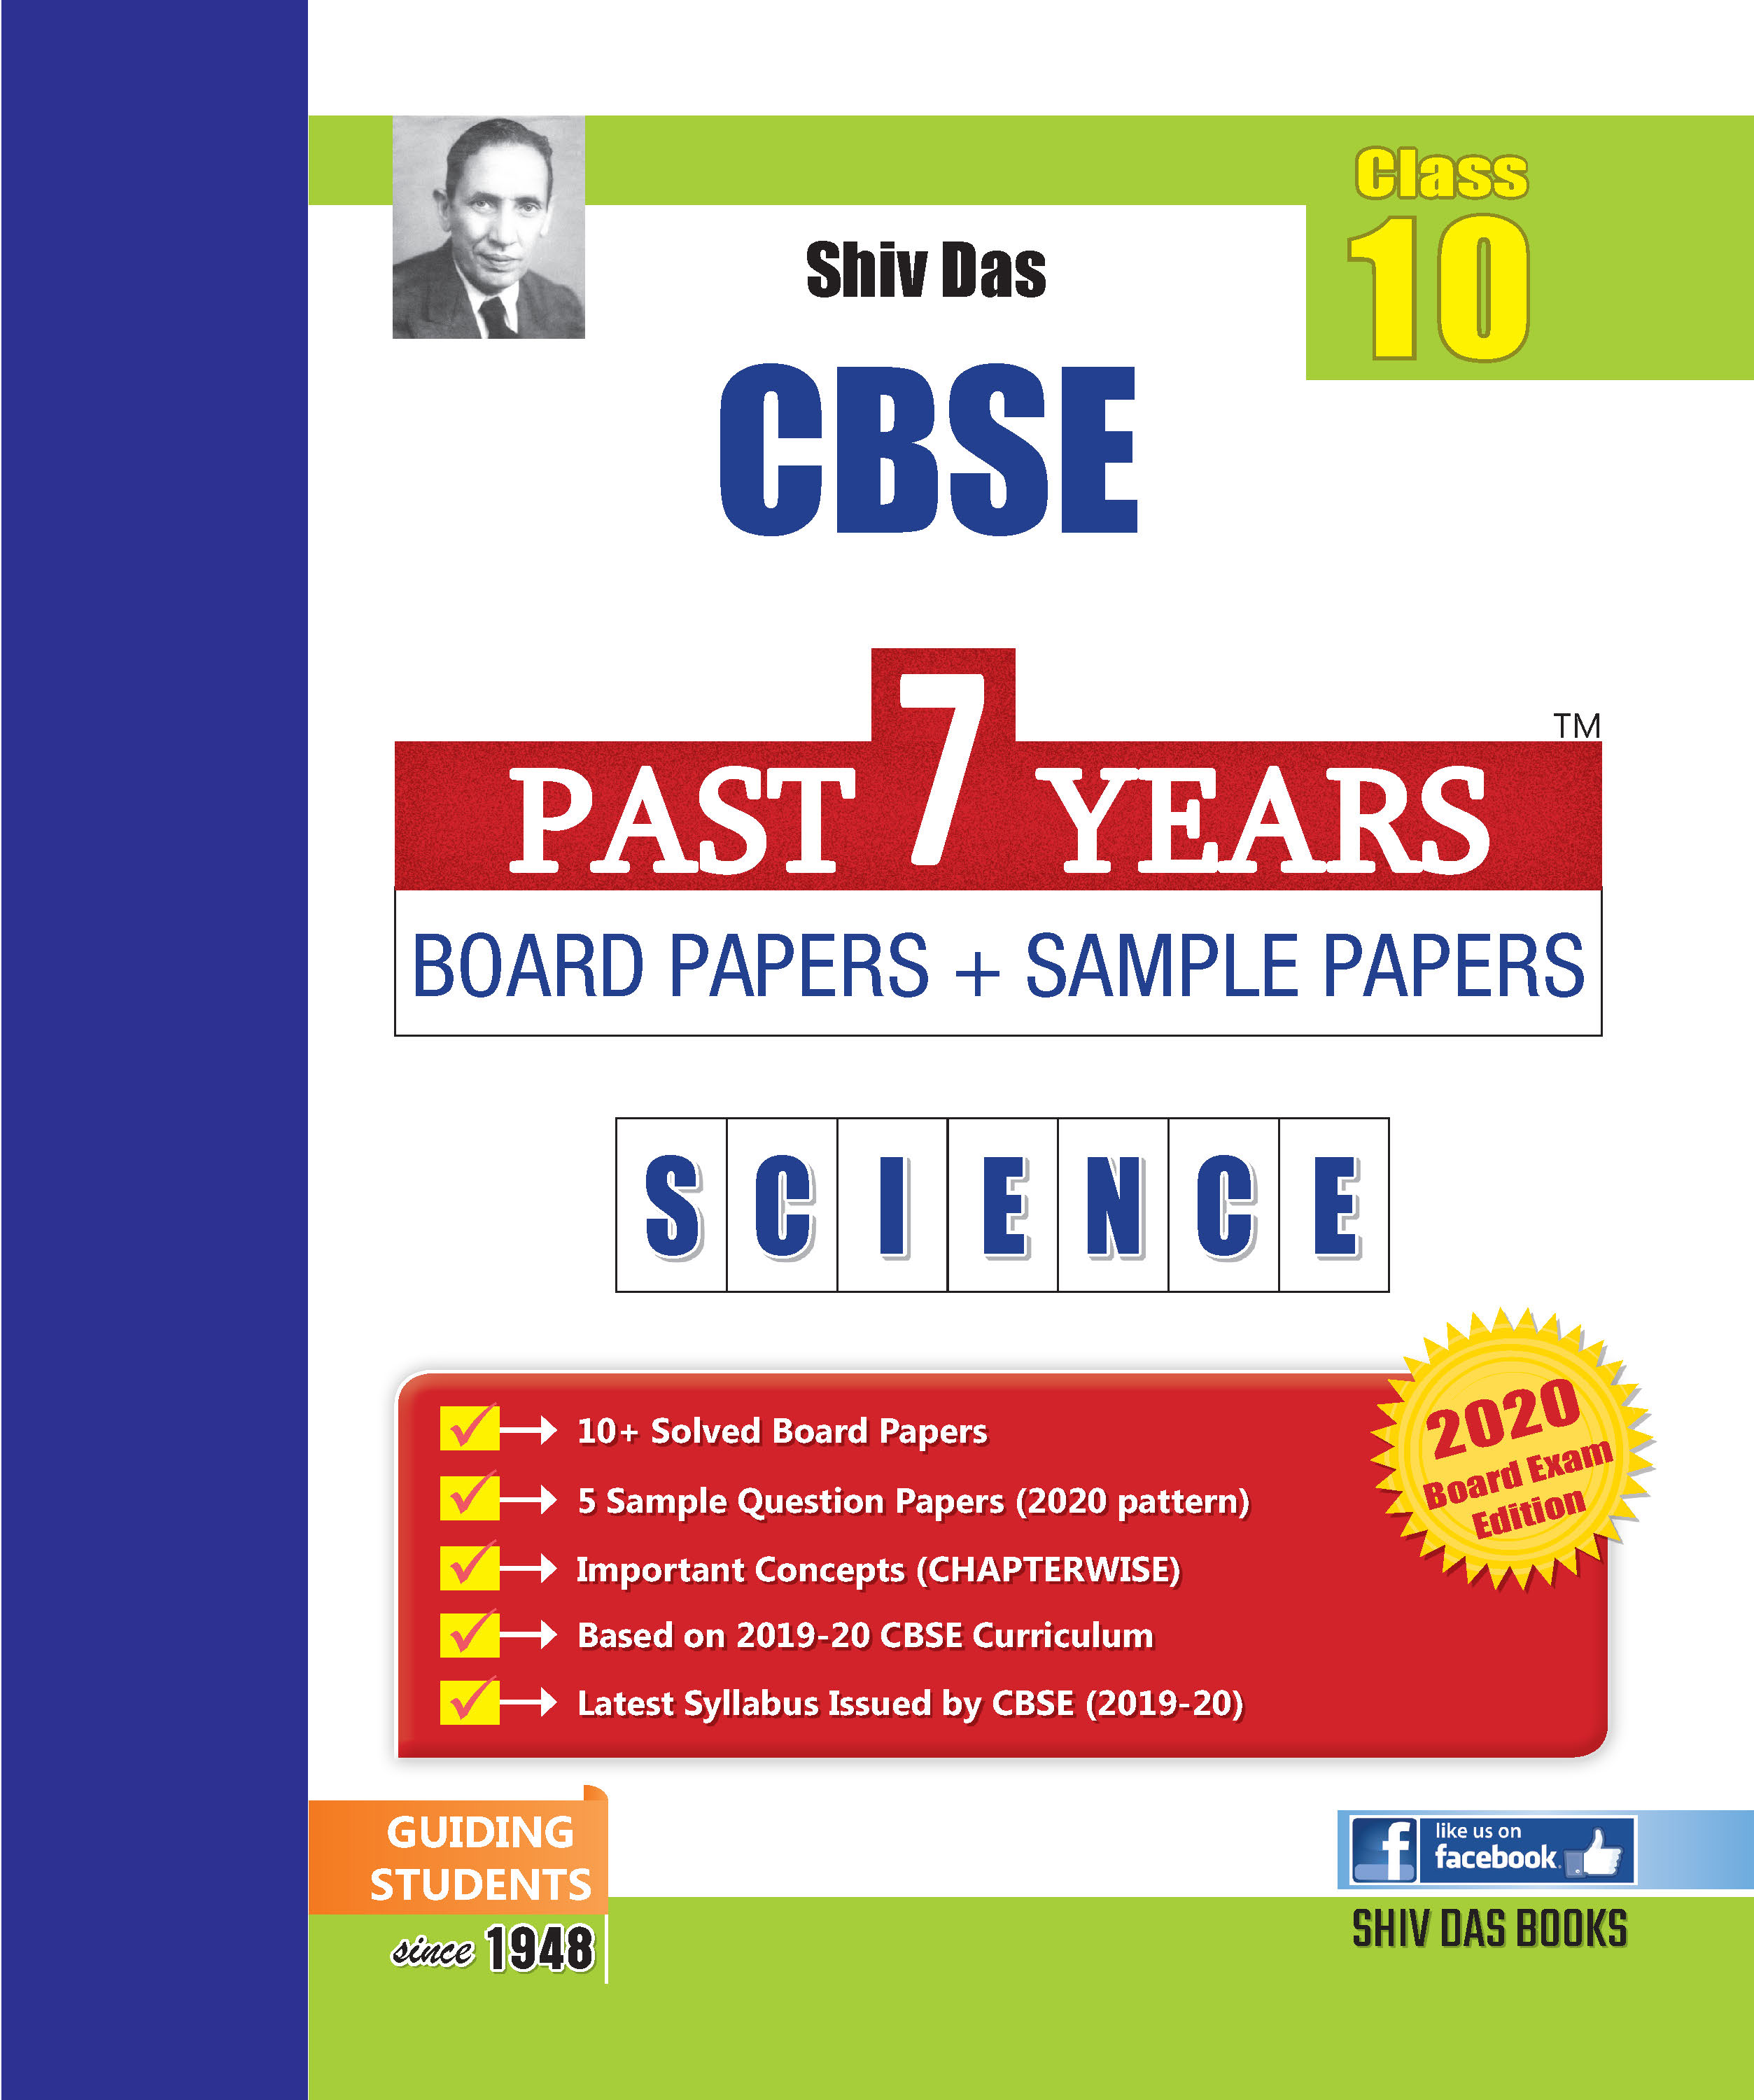 CBSE Past 7 Years Solved Board Papers+Sample Papers for Class 10 Science (2020 Board Exam Edition)